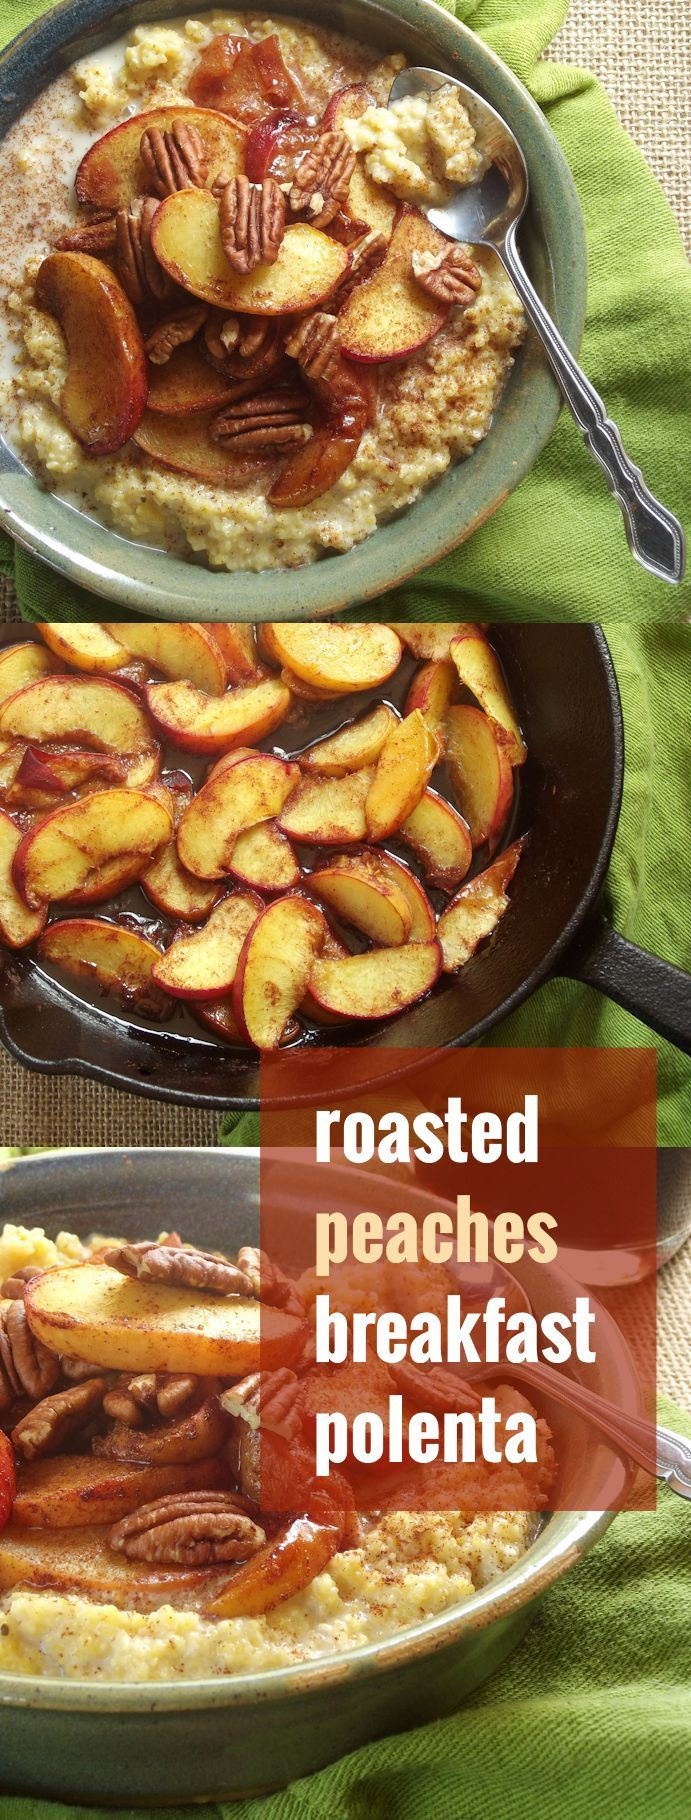 This Rich And Creamy Breakfast Polenta Is Topped With Roasted Summer Peaches Pecan Pieces And A Vegan Breakfast Recipes Clean Eating Breakfast Brunch Recipes